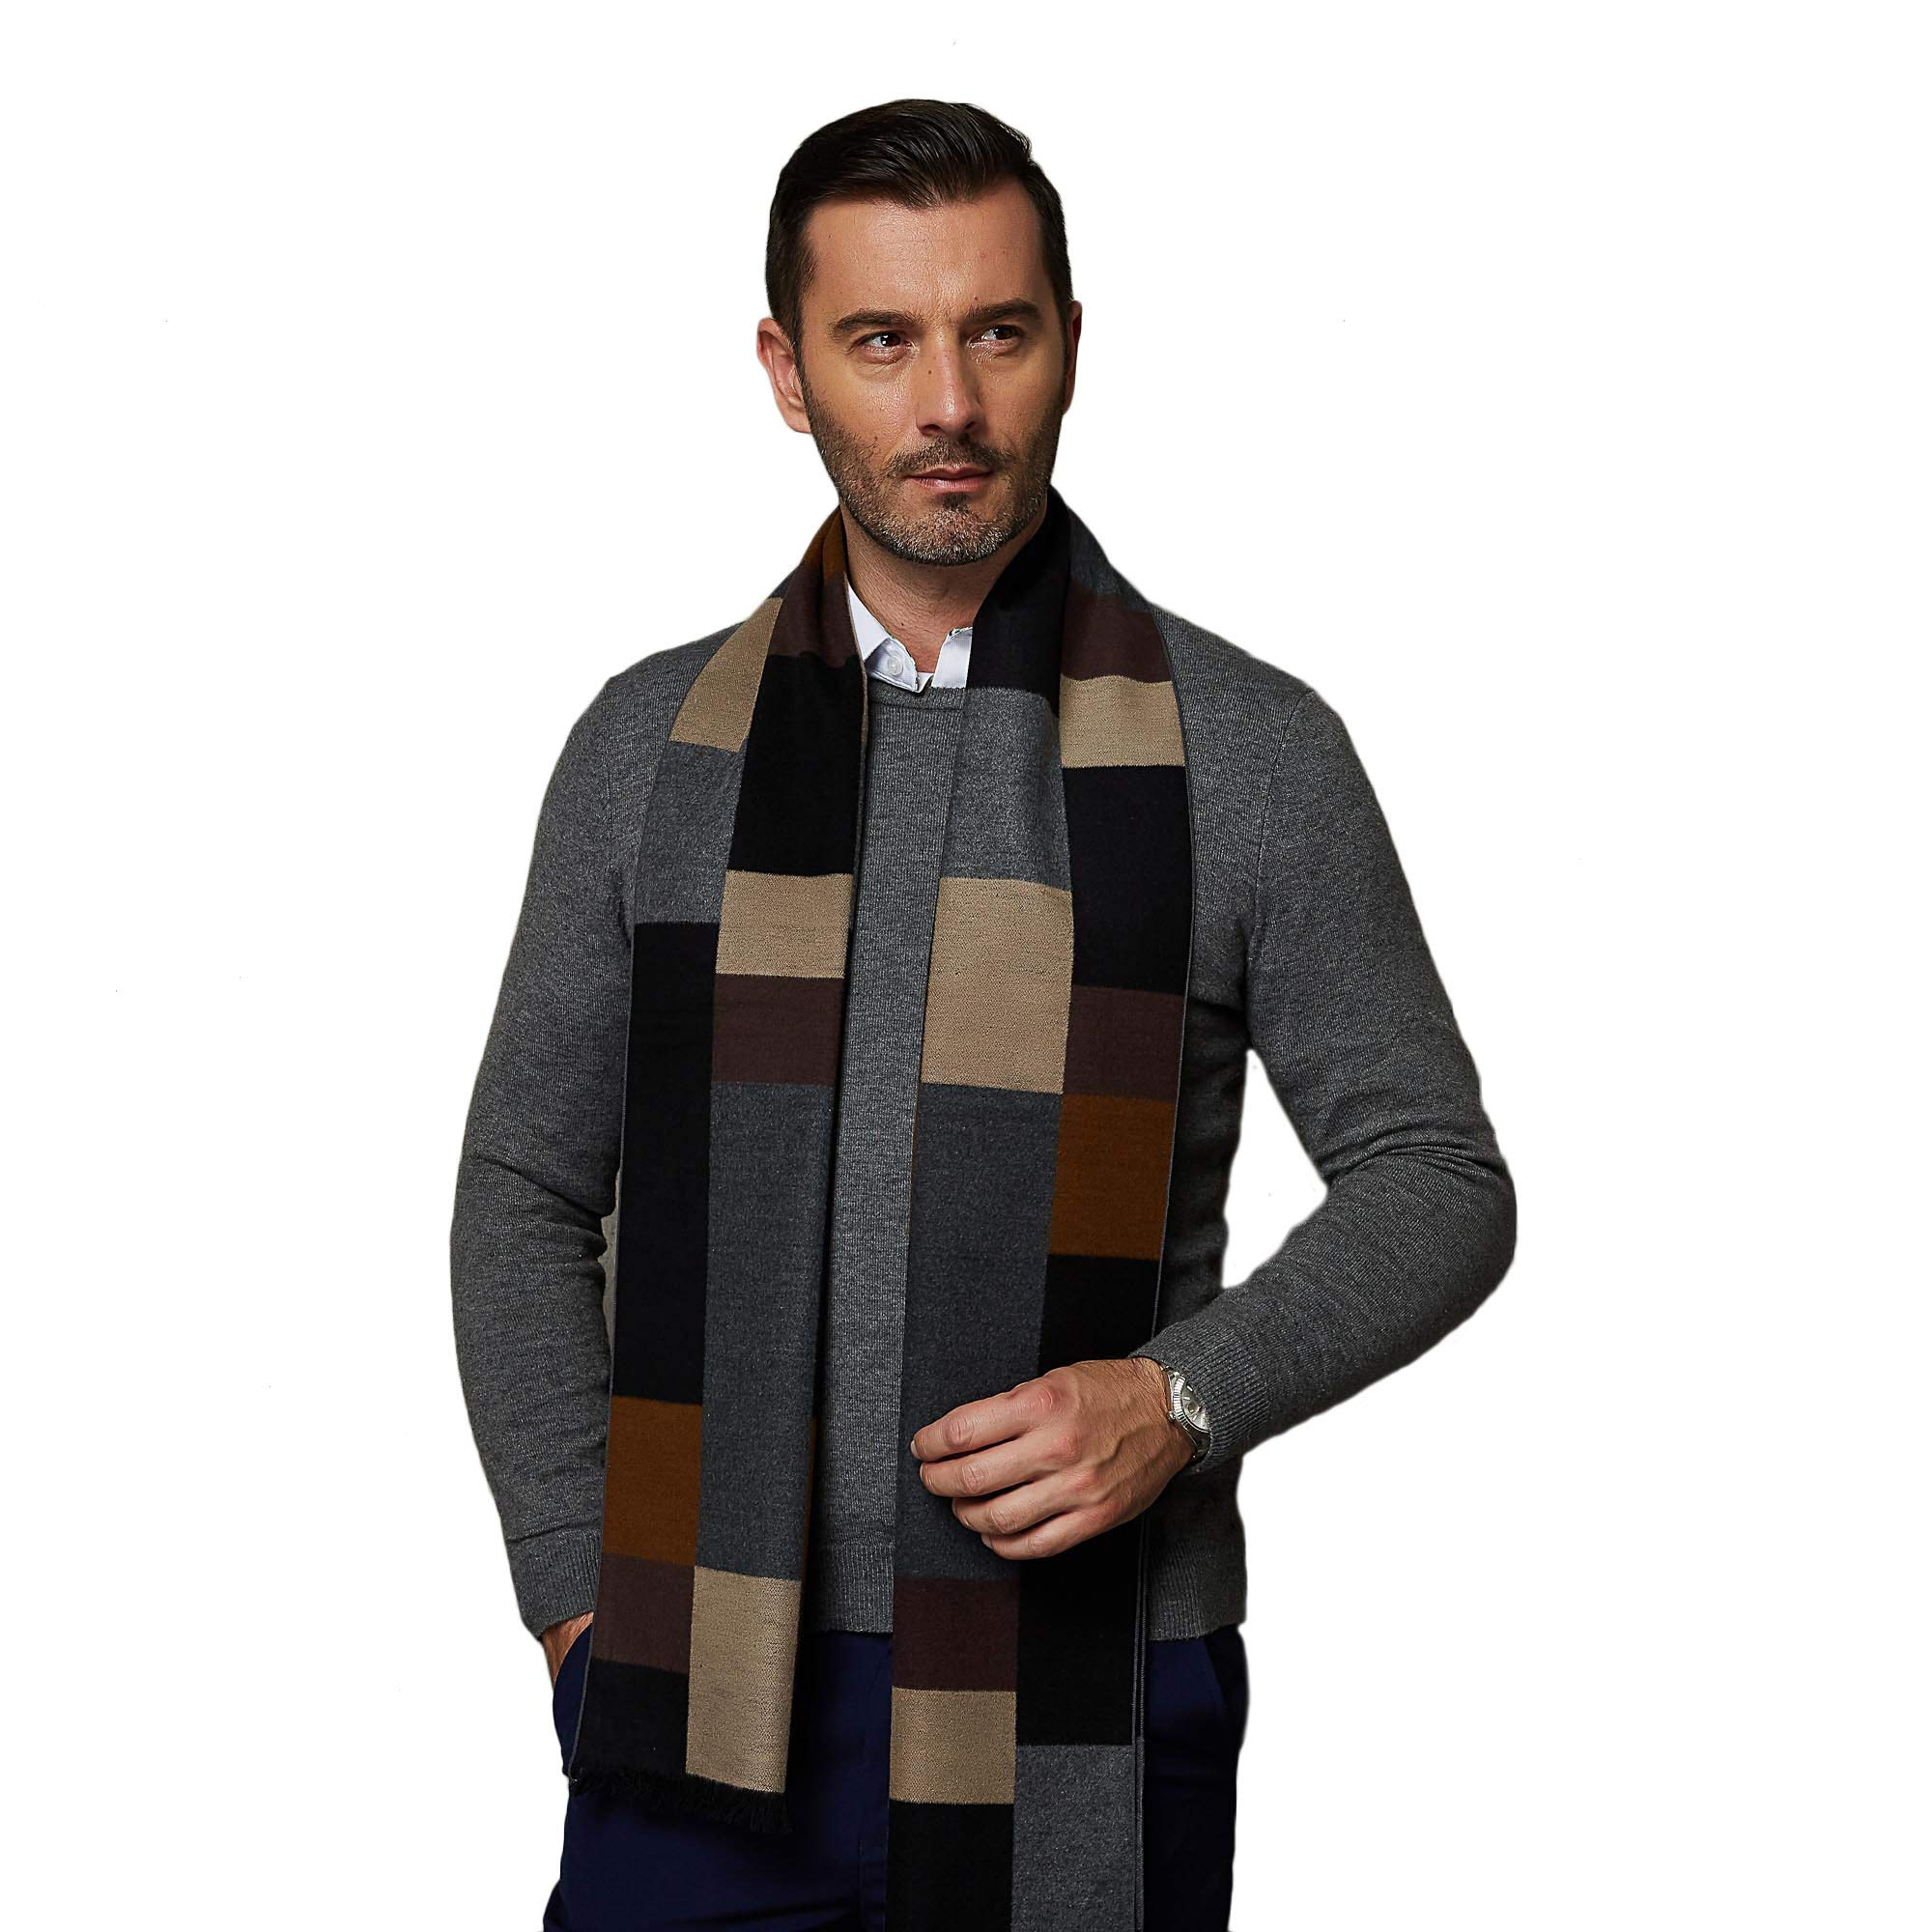 CUDDLE DREAMS Men's Silk Scarves, 100% Mulberry Silk Brushed, Luxuriously Soft (Plaid Black Camel)